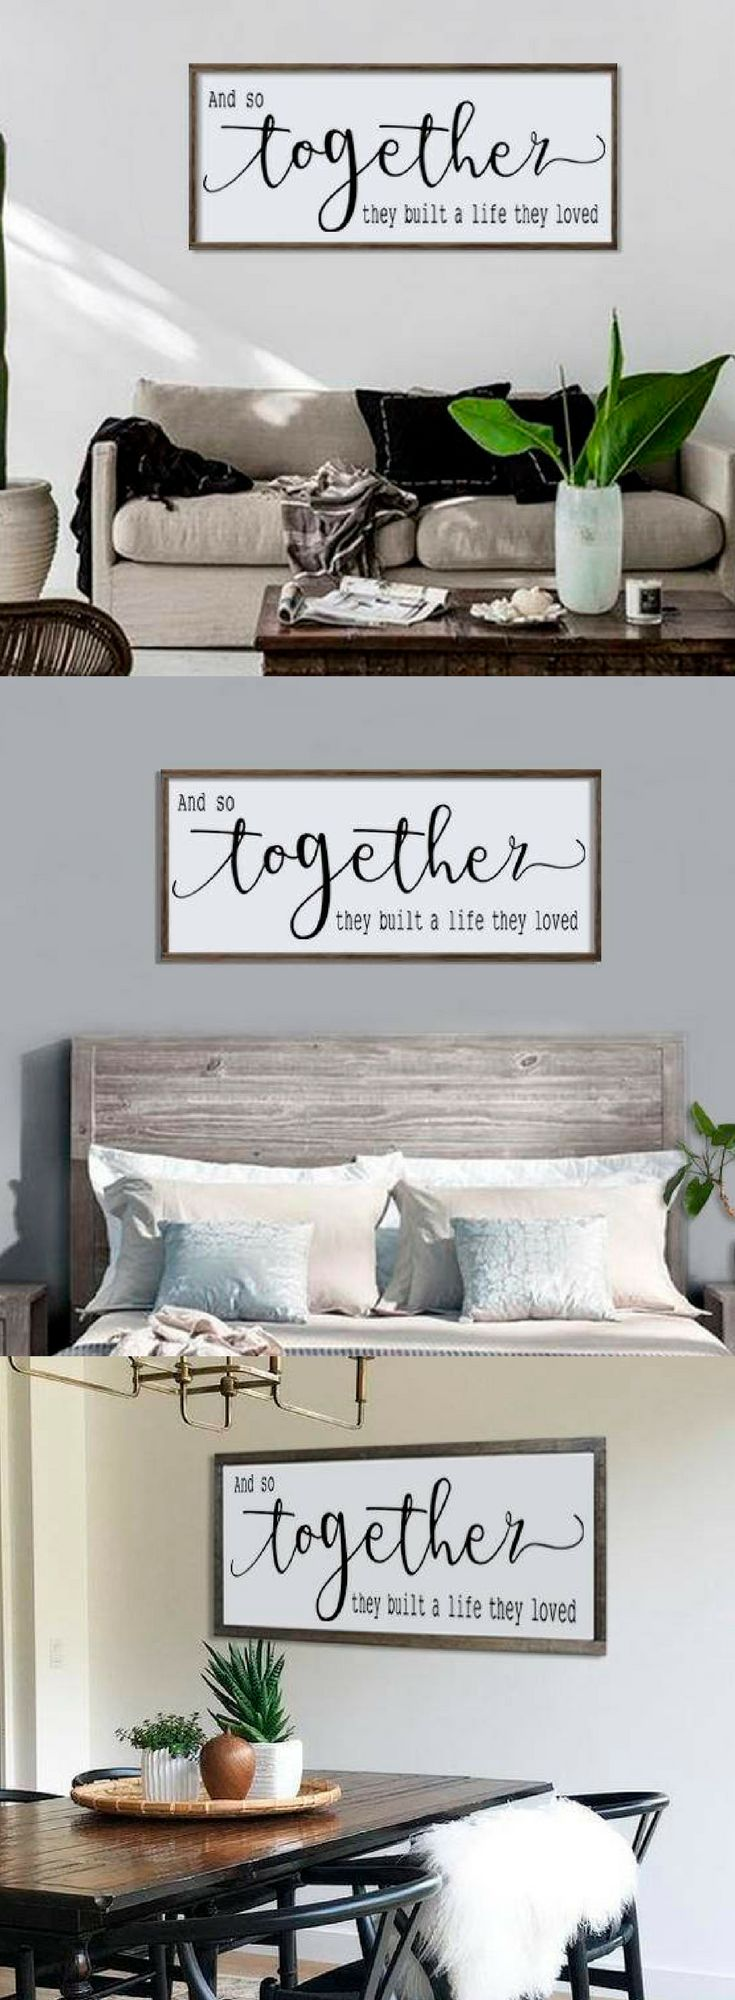 And So Together, They Built A Life They Loved Wood Sign, Large Framed Sign, Bedroom Wall Art, Couples Sign, Farmhouse Style Sign, Love Decor #ad #rustic #rusticdecor #rusticfarmhouse #farmhouse #farmhousestyle #farmhousebedroom #woodsigns #wooden